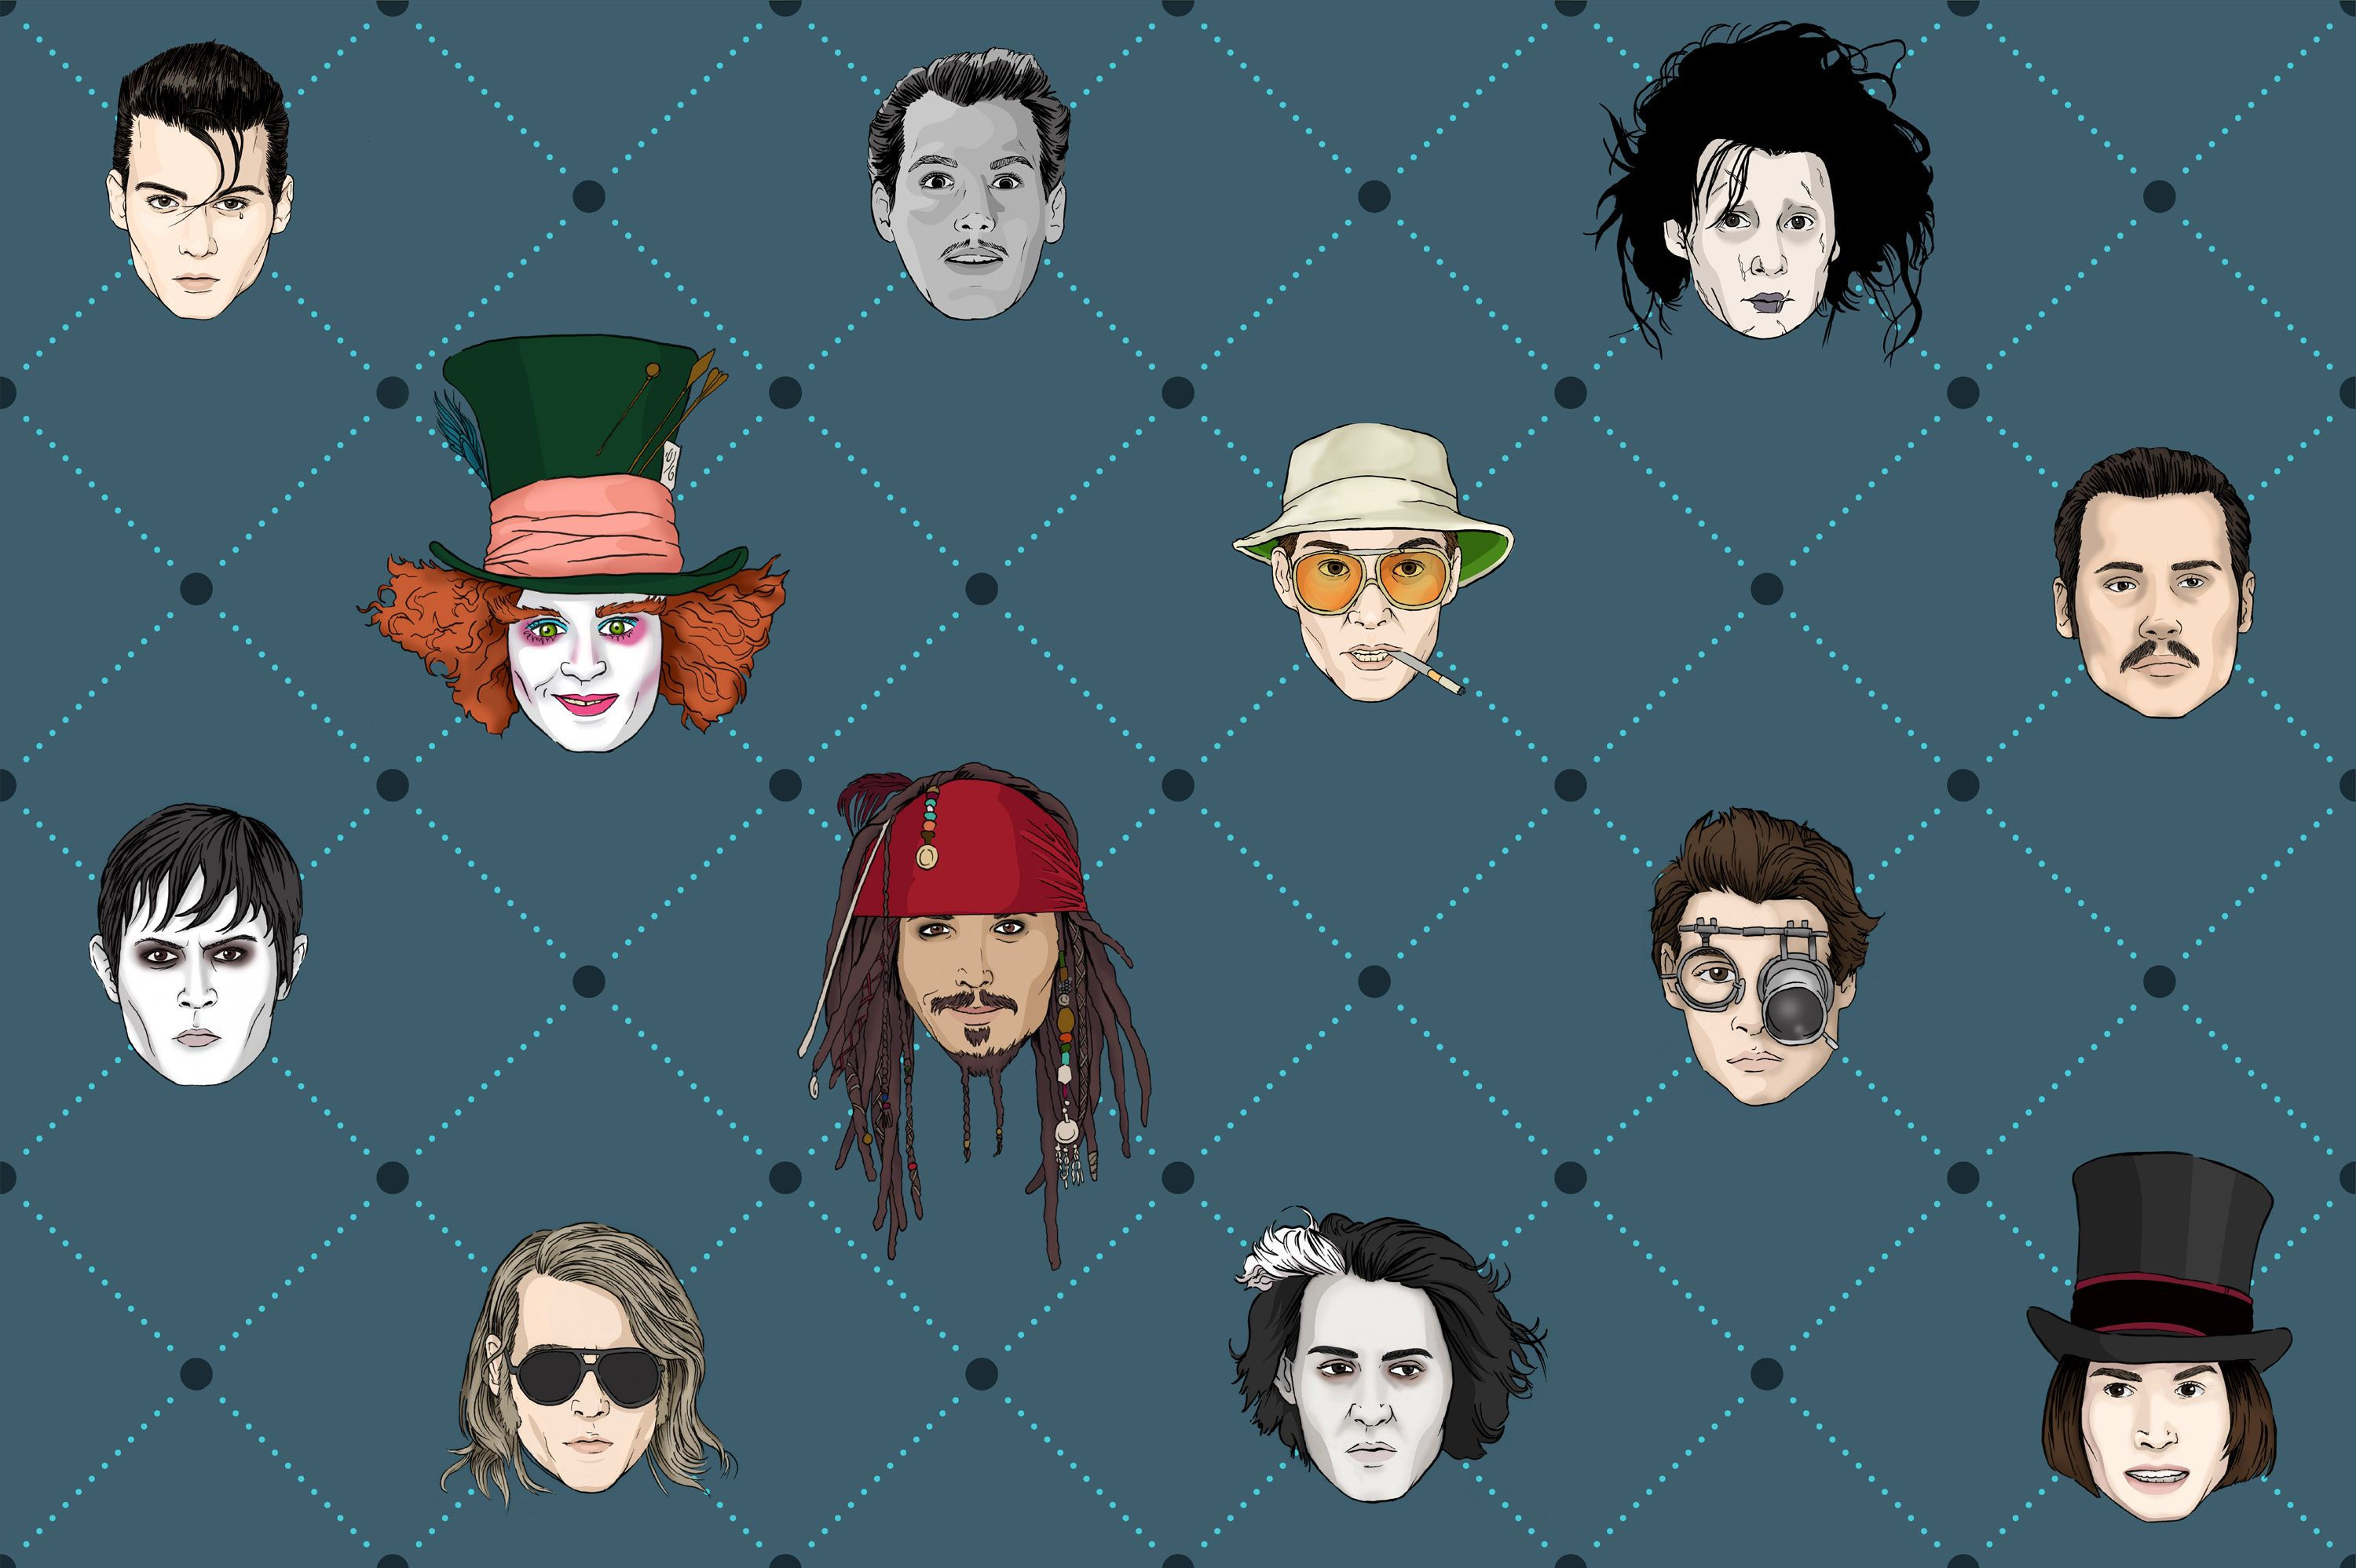 Johnny Depp Wallpaper Pattern Print Featuring The Many Characters Of Johnny Depp Edward Scissorhands Johnny Depp Wallpaper Johnny Depp Johnny Depp Pictures